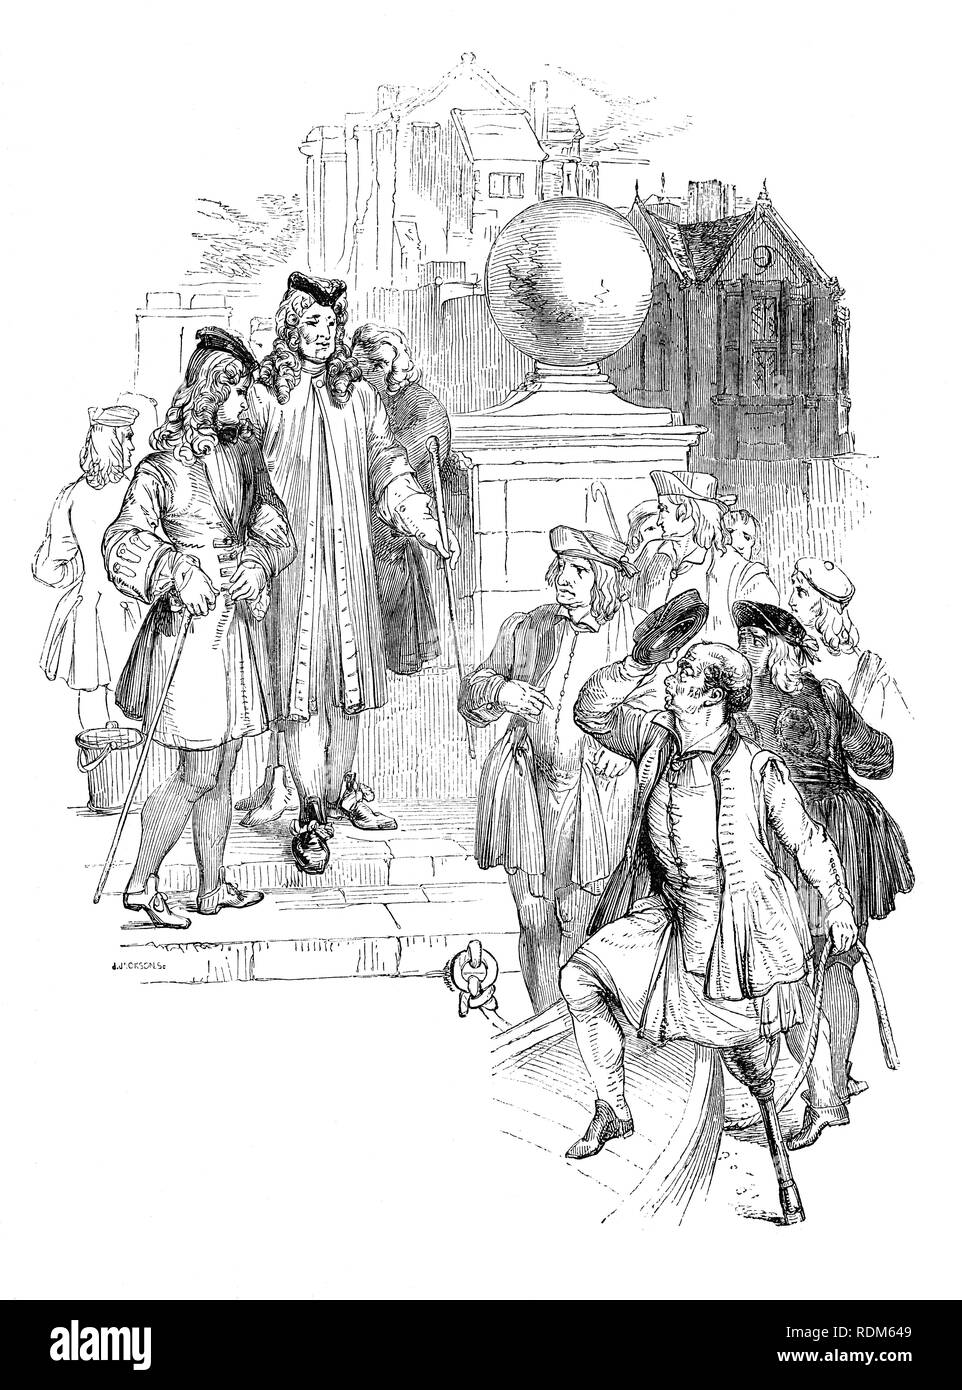 Sir Roger de Coverley, the fictional character, devised by Joseph Addison, at theTemple steps where he selects a one-legged boatman to take him to Vauxhall.  He was portrayed as the ostensible author of papers and letters that were published in Addison and Richard Steele's influential periodical The Spectator.  Sir Roger was a baronet and  a typical landed country gentleman He was also a member of the fictitious Spectator Club, and the de Coverley writings included entertaining vignettes of early 18th-century English life that were often considered The Spectator's best feature. - Stock Image